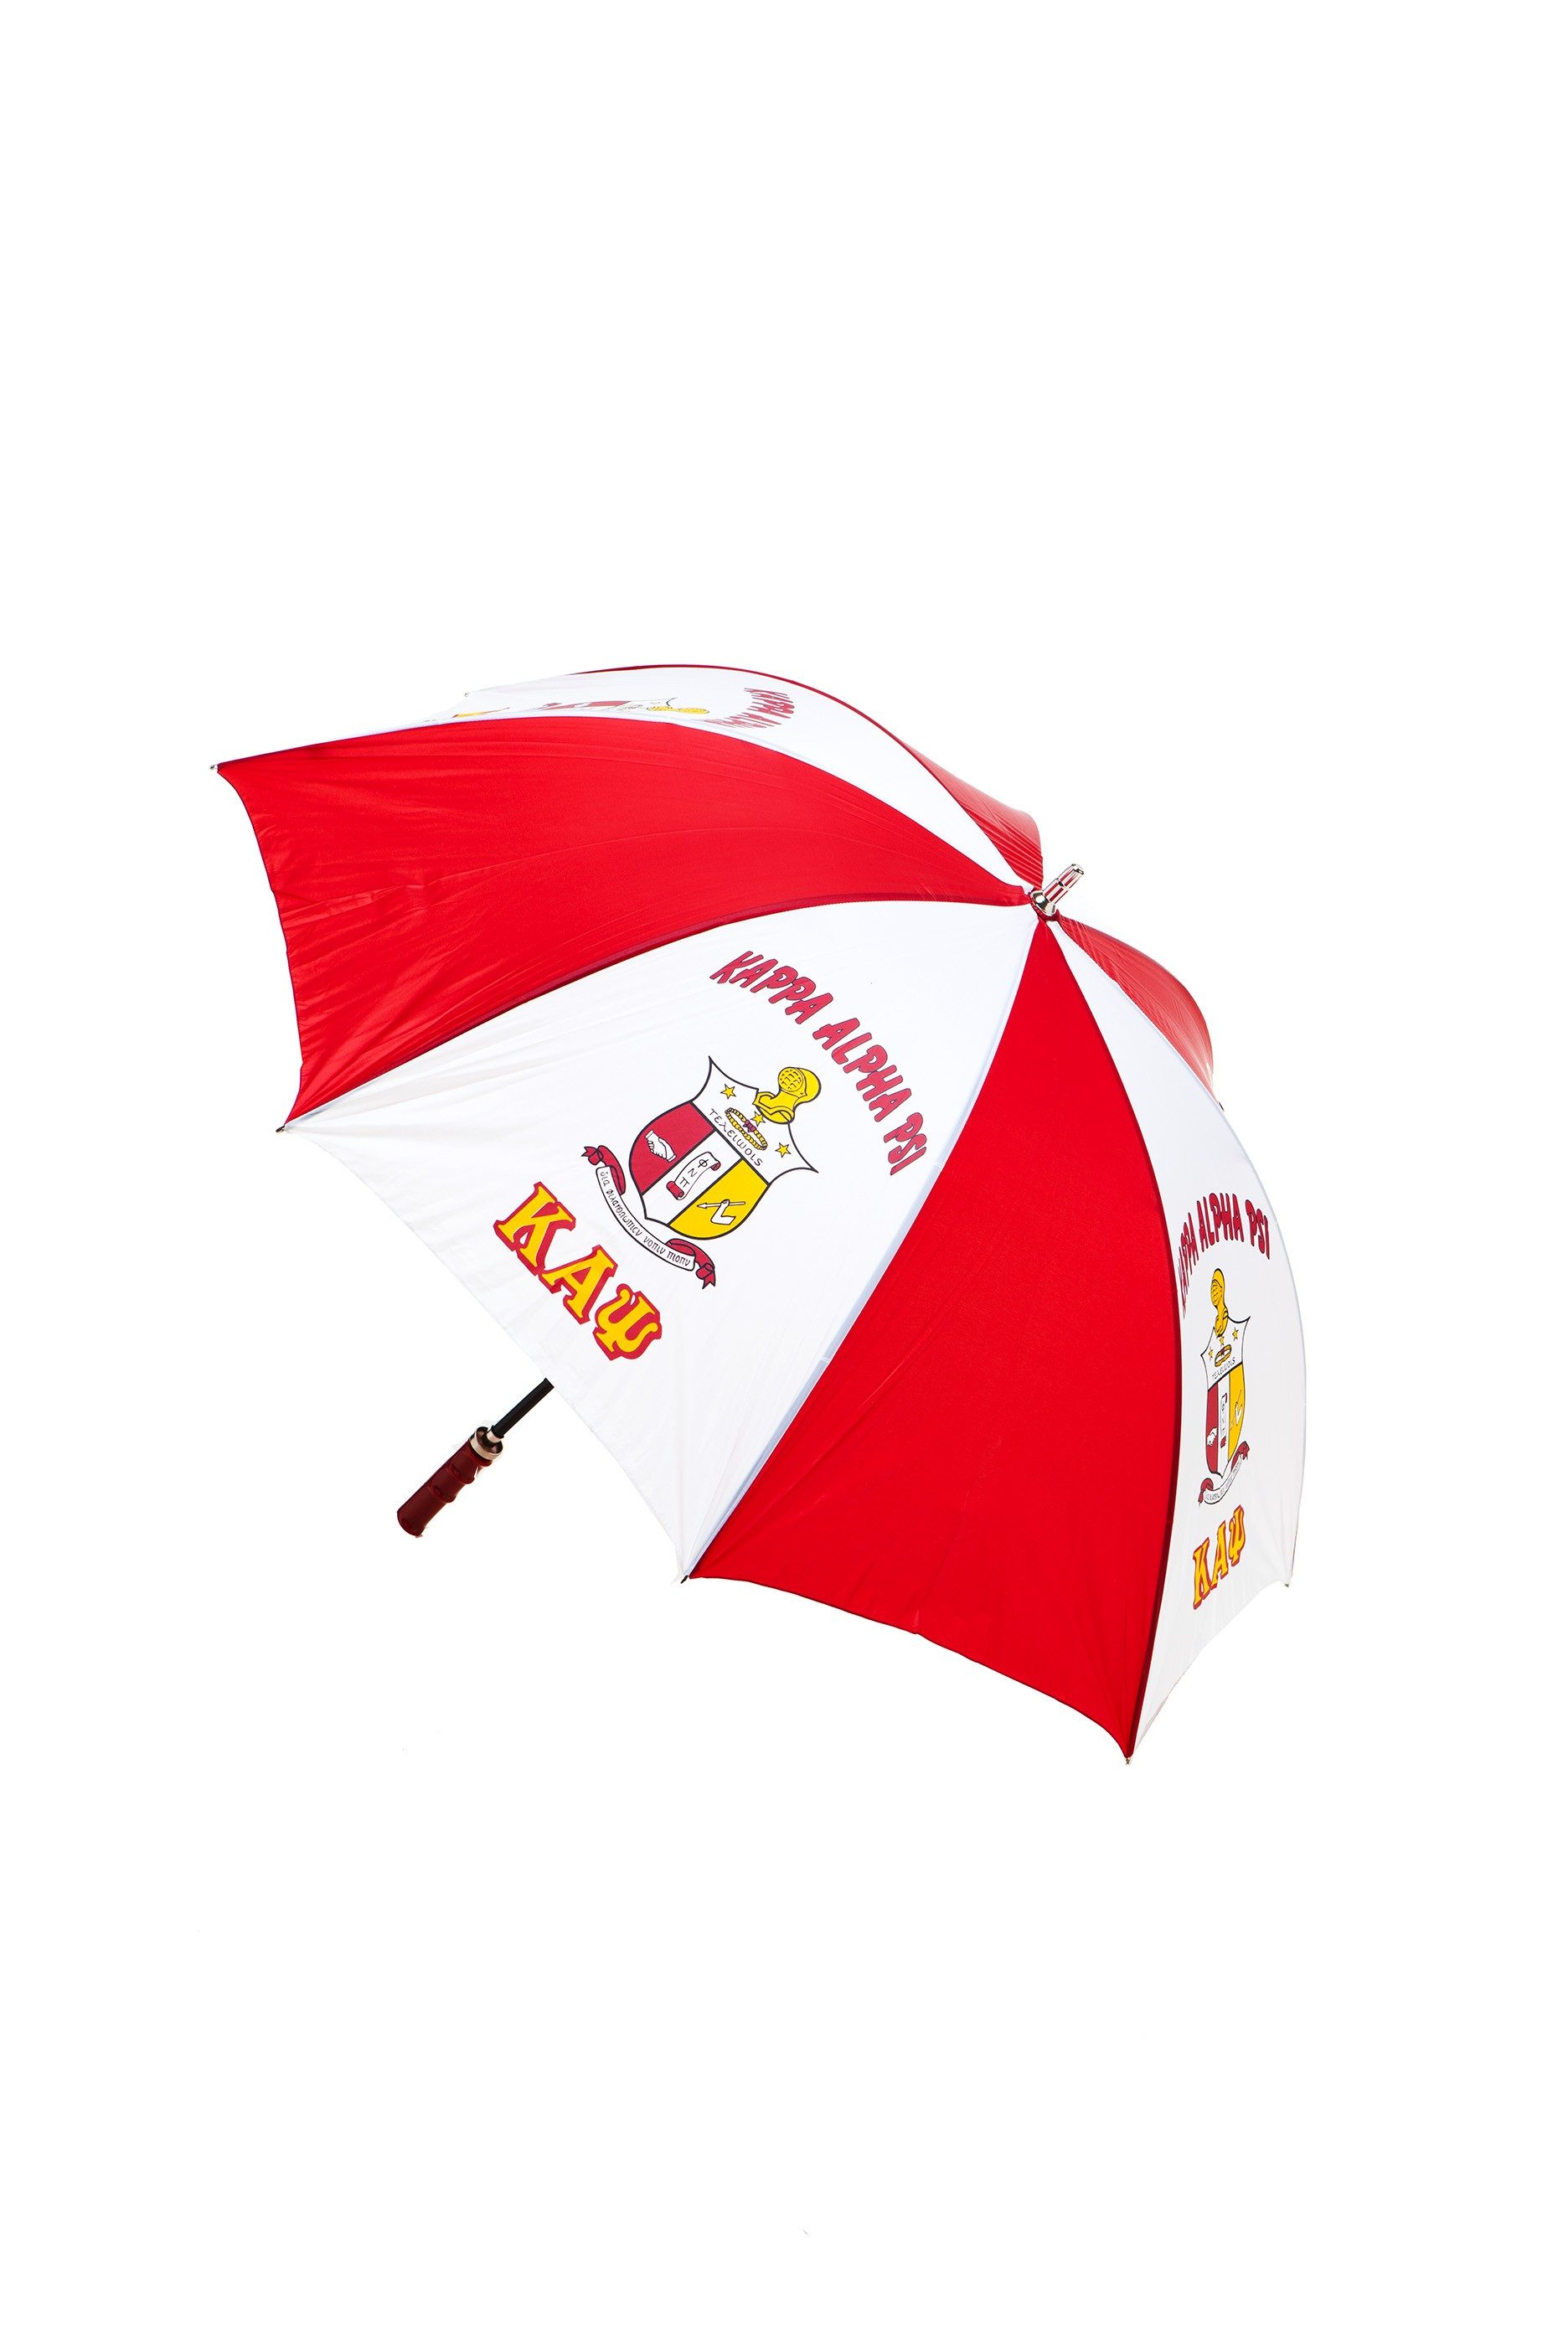 Kappa Alpha Psi umbrella 30 Inch Jumbo